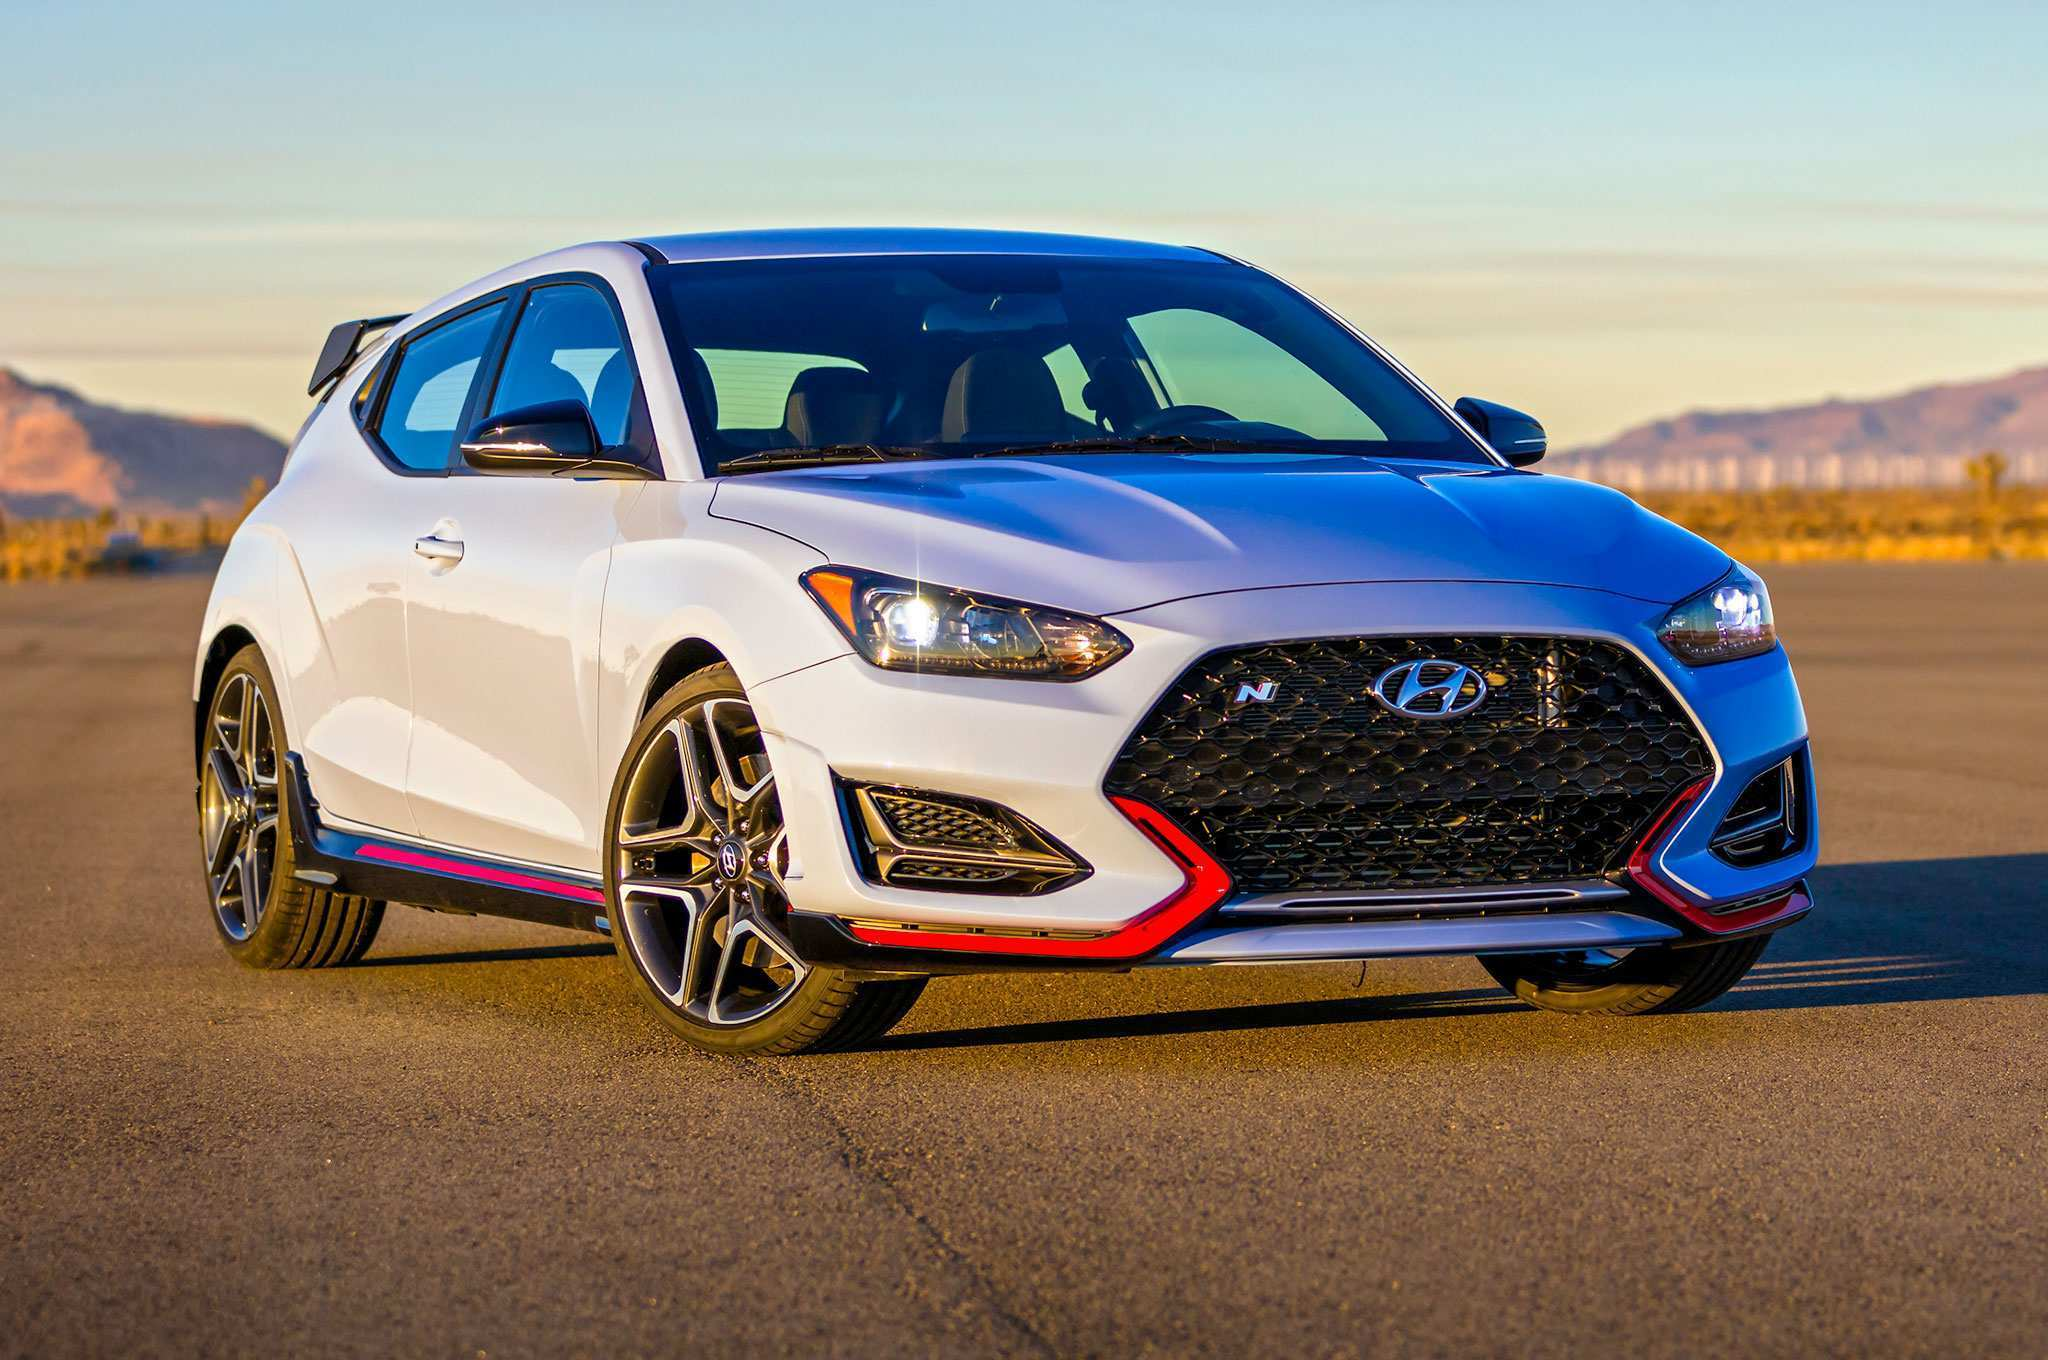 74 New 2019 Hyundai Veloster N Images by 2019 Hyundai Veloster N